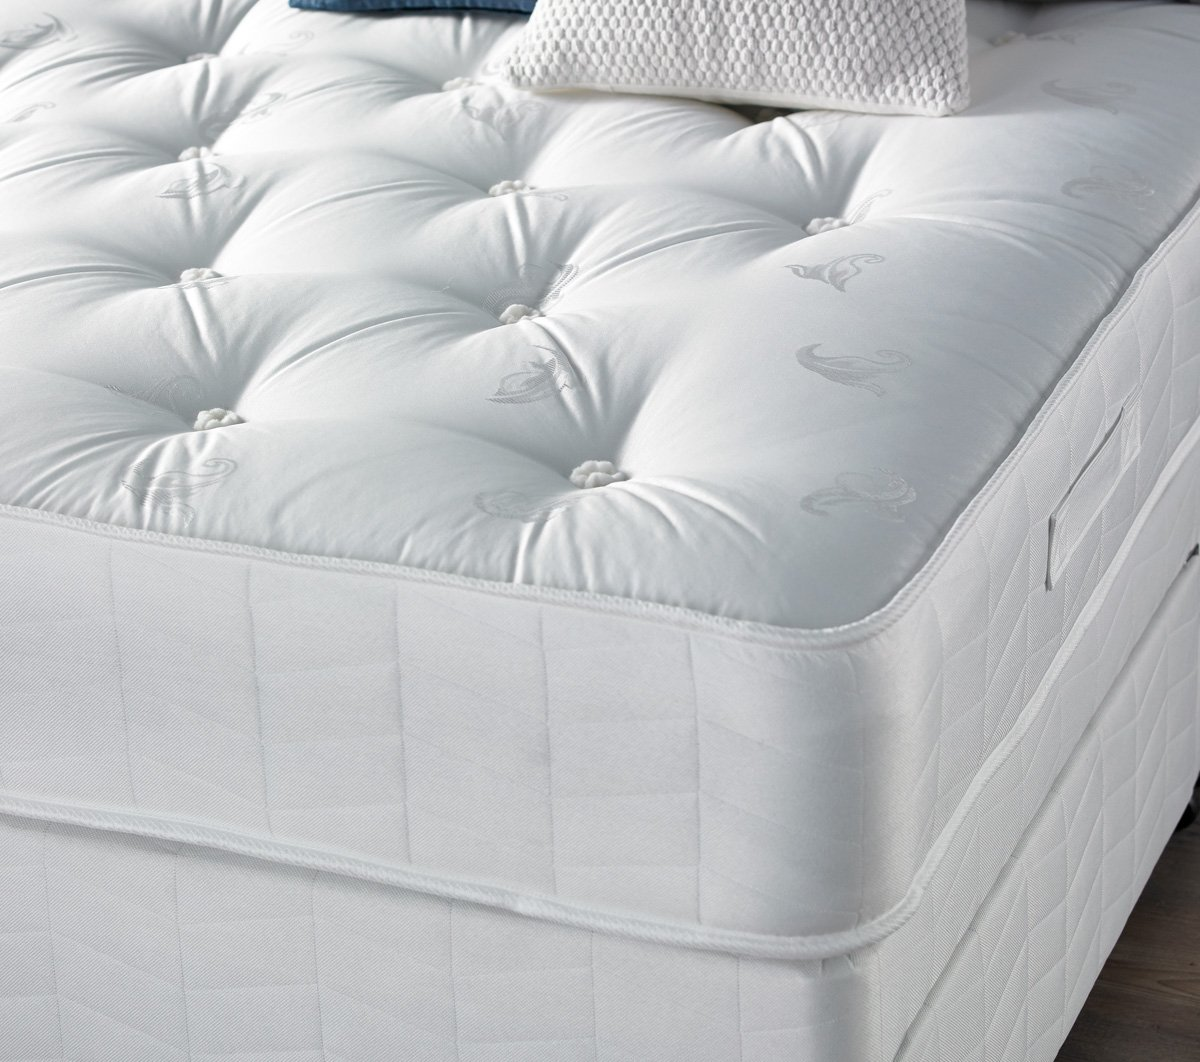 Giltedge Beds Chatsworth 1000 Pocket Sprung Small Double 4'0 Mattress